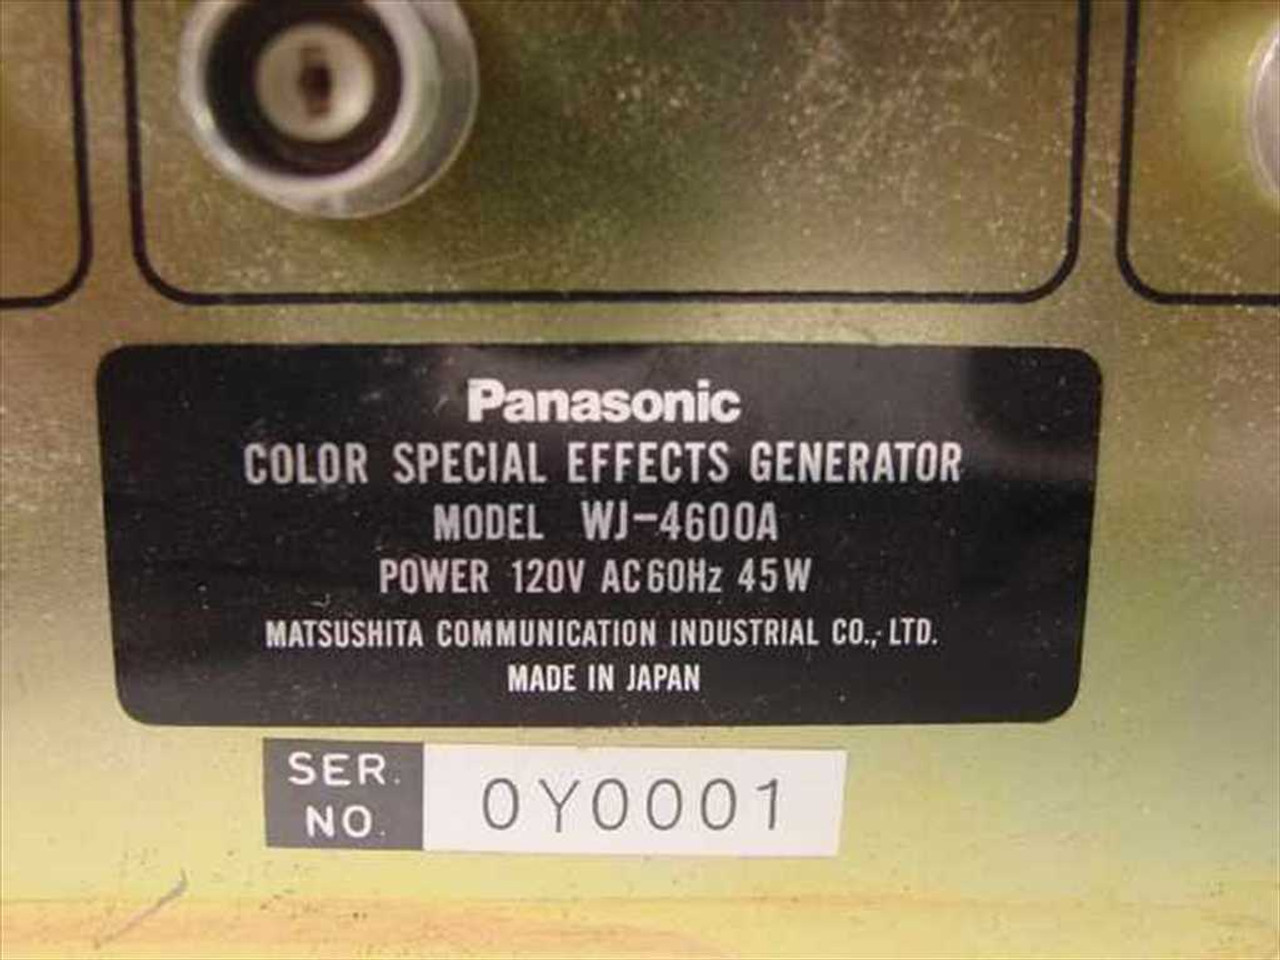 Panasonic Color Special Effects Generator (WJ-4600A)